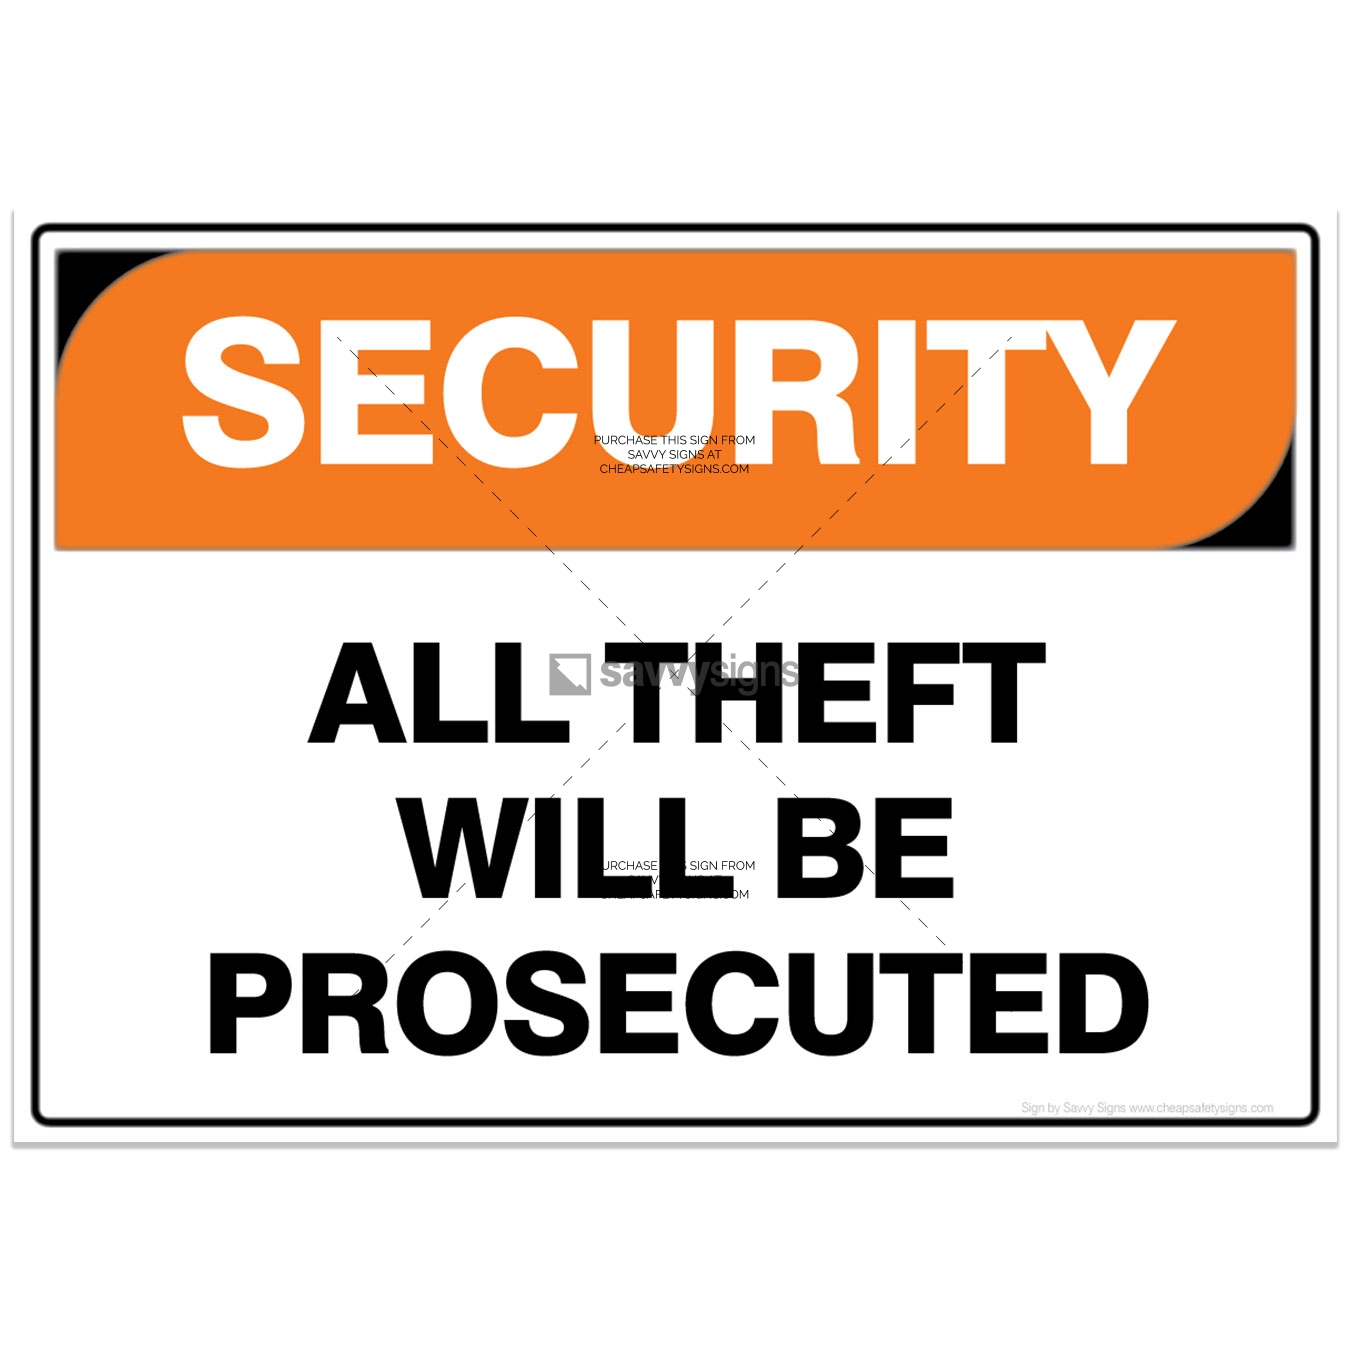 SSSEC3005-SECURITY-Workplace-Safety-Signs_Savvy-Signs_v3